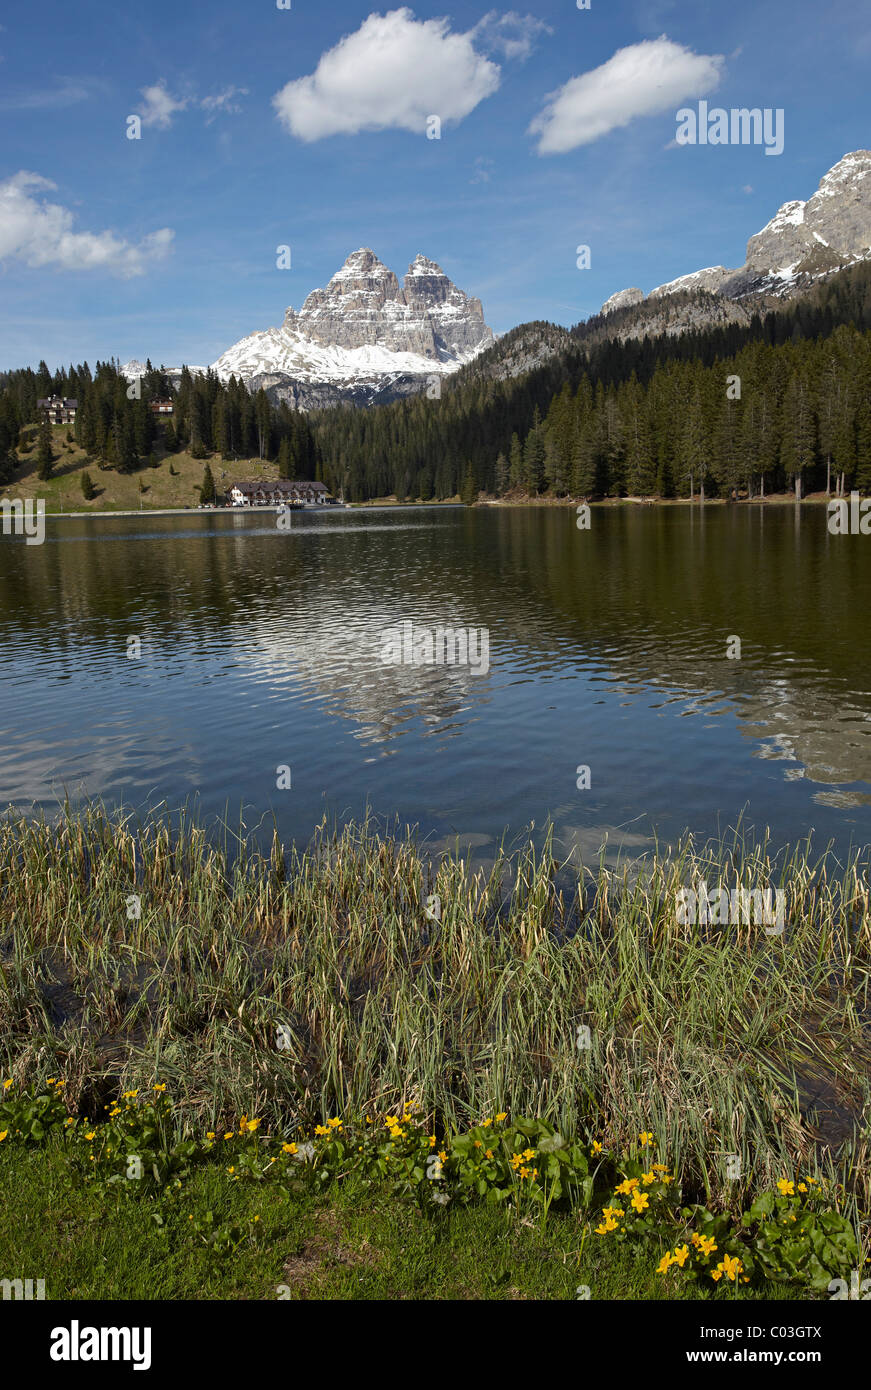 Lago Misurina, Lake Misurina, Three Peaks, South Tyrol, Dolomites, Italy, Europe - Stock Image